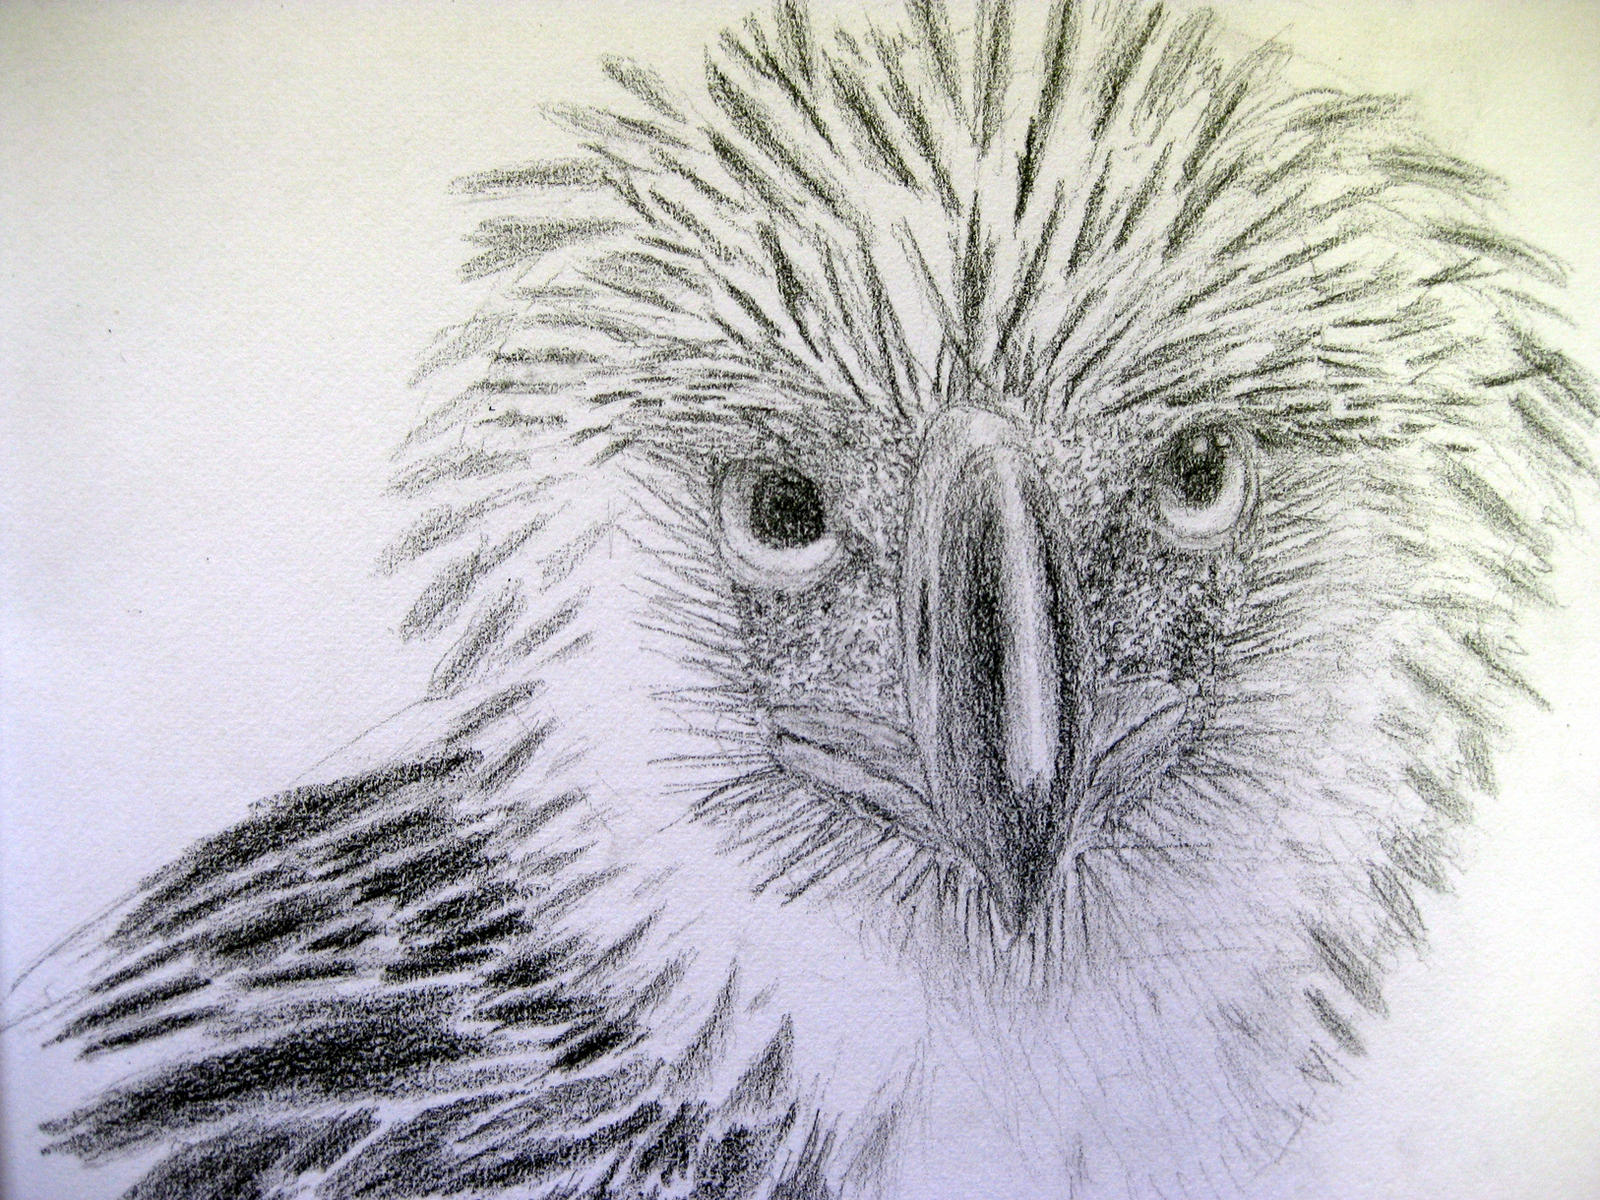 Philippine Eagle by alphabetsoup314 on DeviantArt